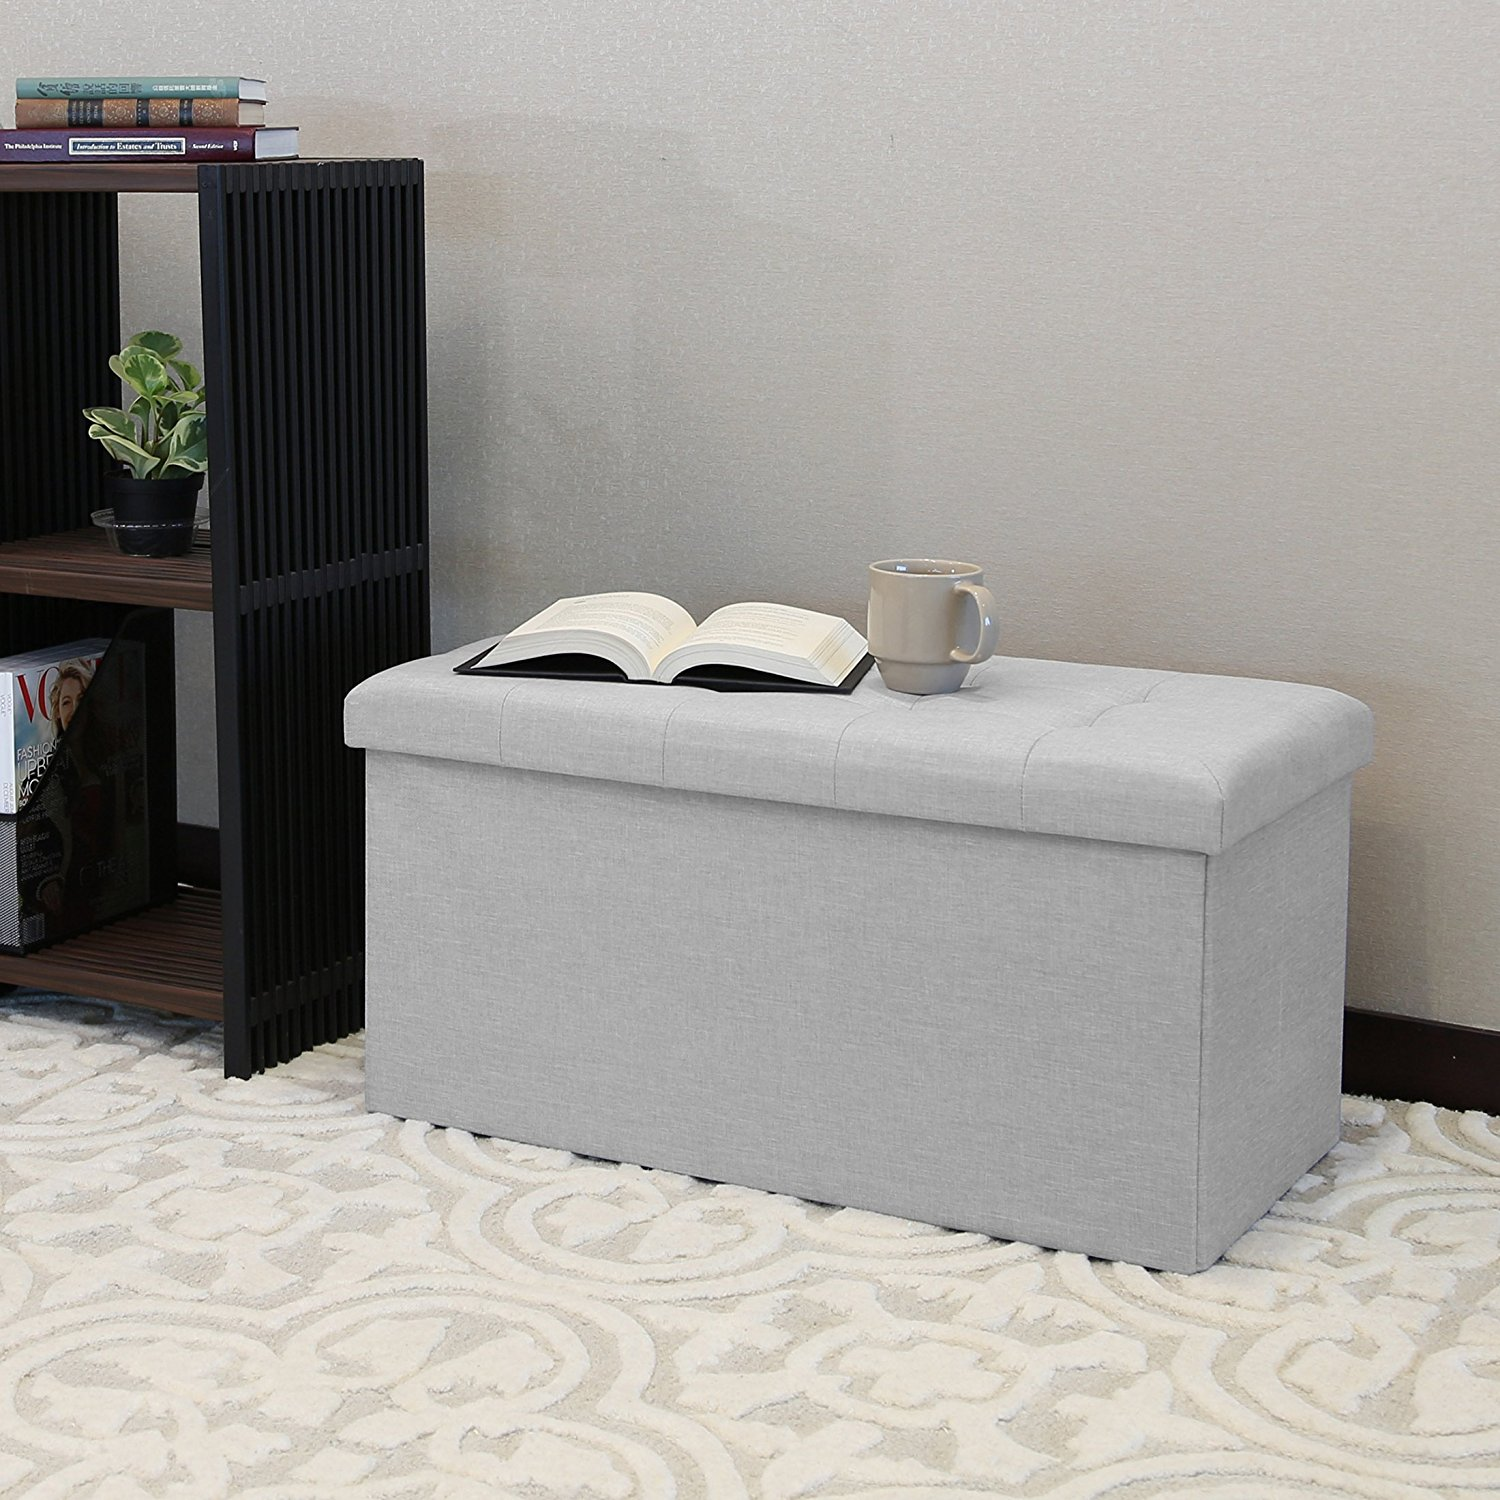 [Review] Seville Classics Foldable Storage Ottoman Bench & The Most Affordable Ottoman - Seville Classics Foldable Storage ...